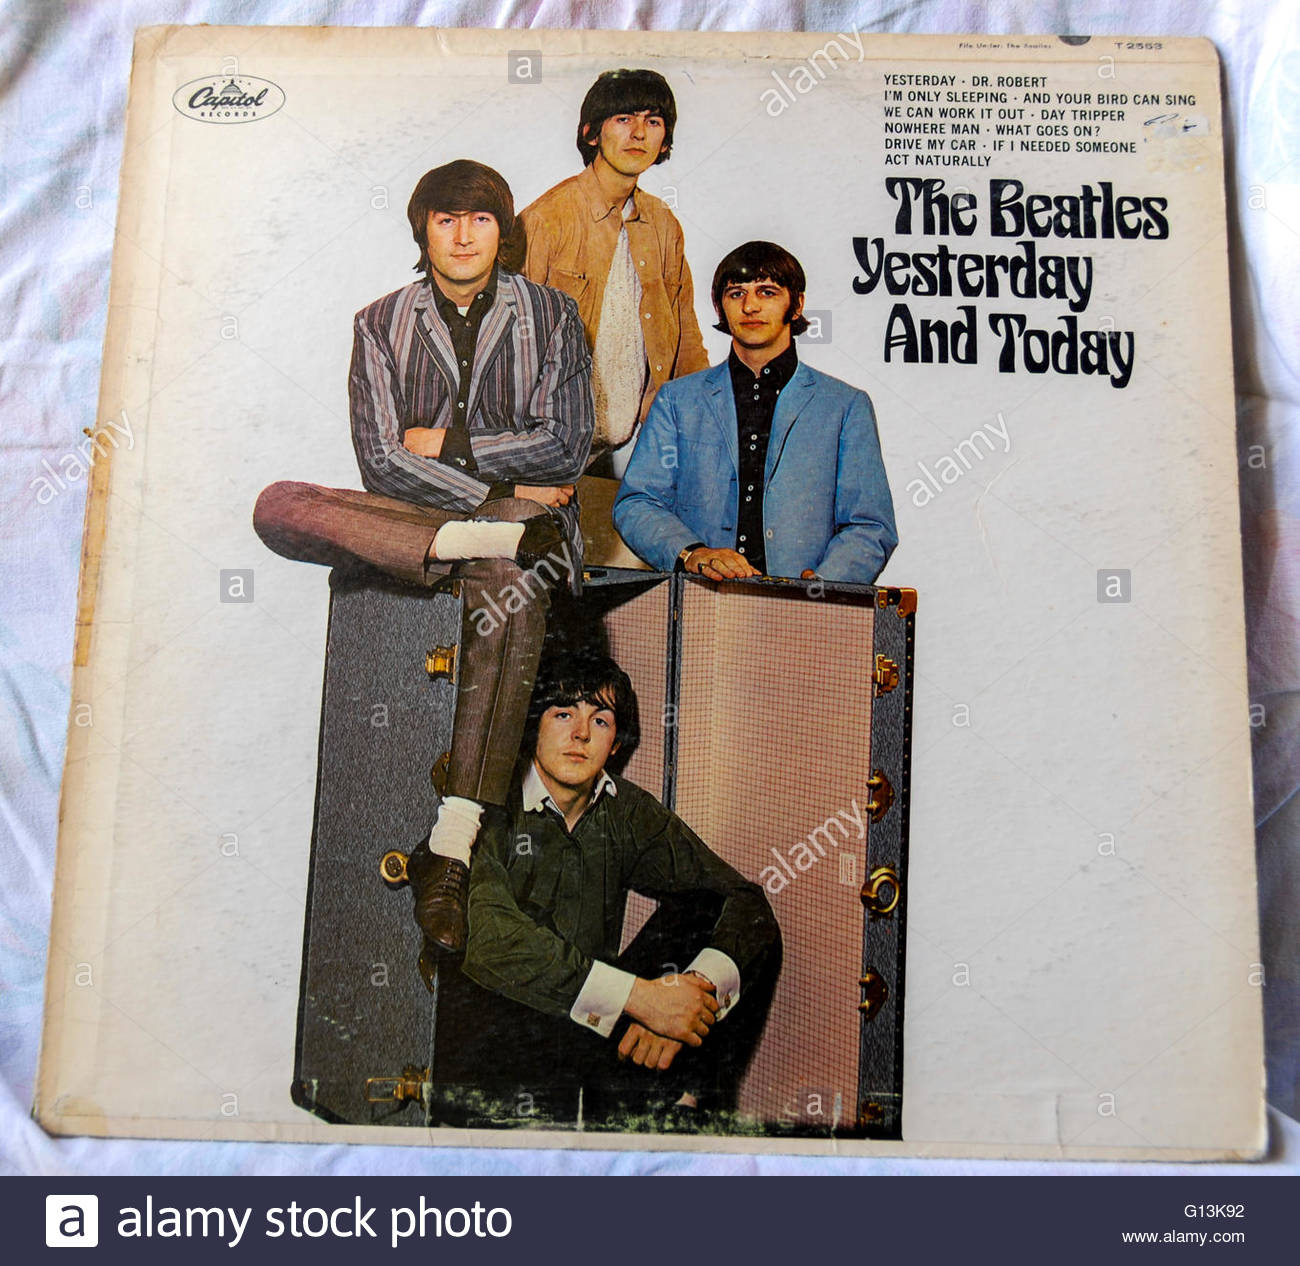 Classic album artwork (Vinyl) The Beatles, 'Yesterday and Today' (Front) 1960s - Stock Image